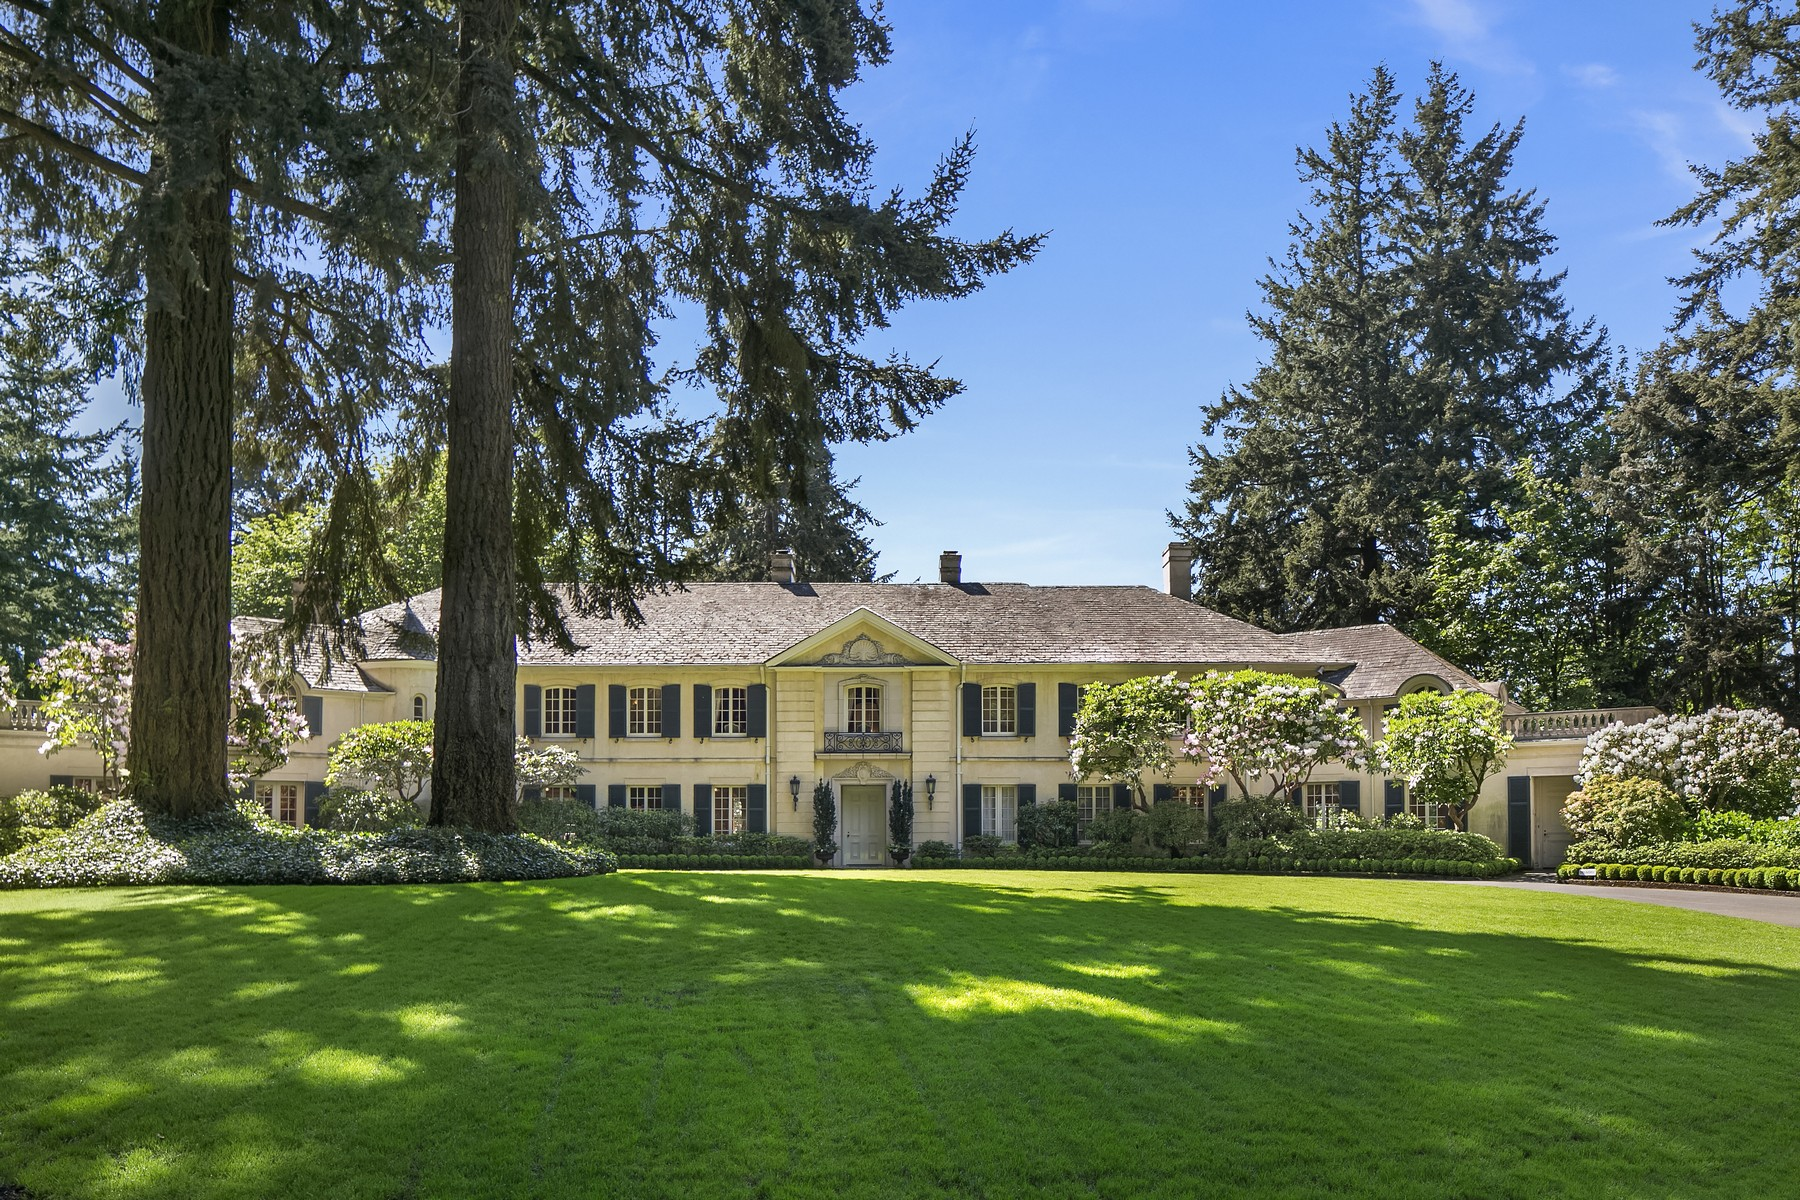 Single Family Home for Sale at Chapel Lane Estate 166 Boundary Lane NW Seattle, Washington 98177 United States